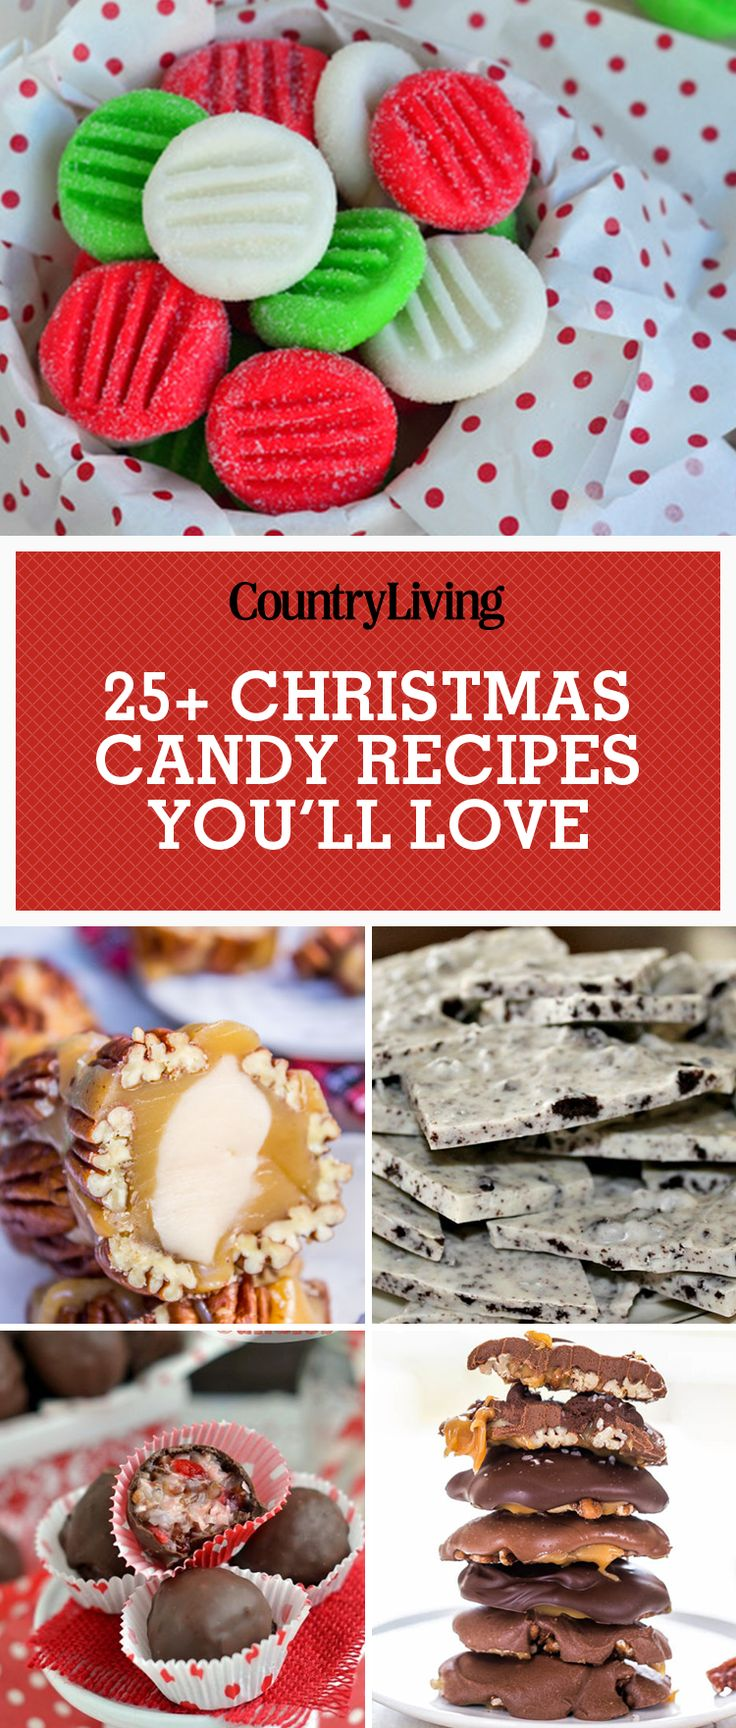 1762 best Candy images on Pinterest | Kitchen, Desserts and ...